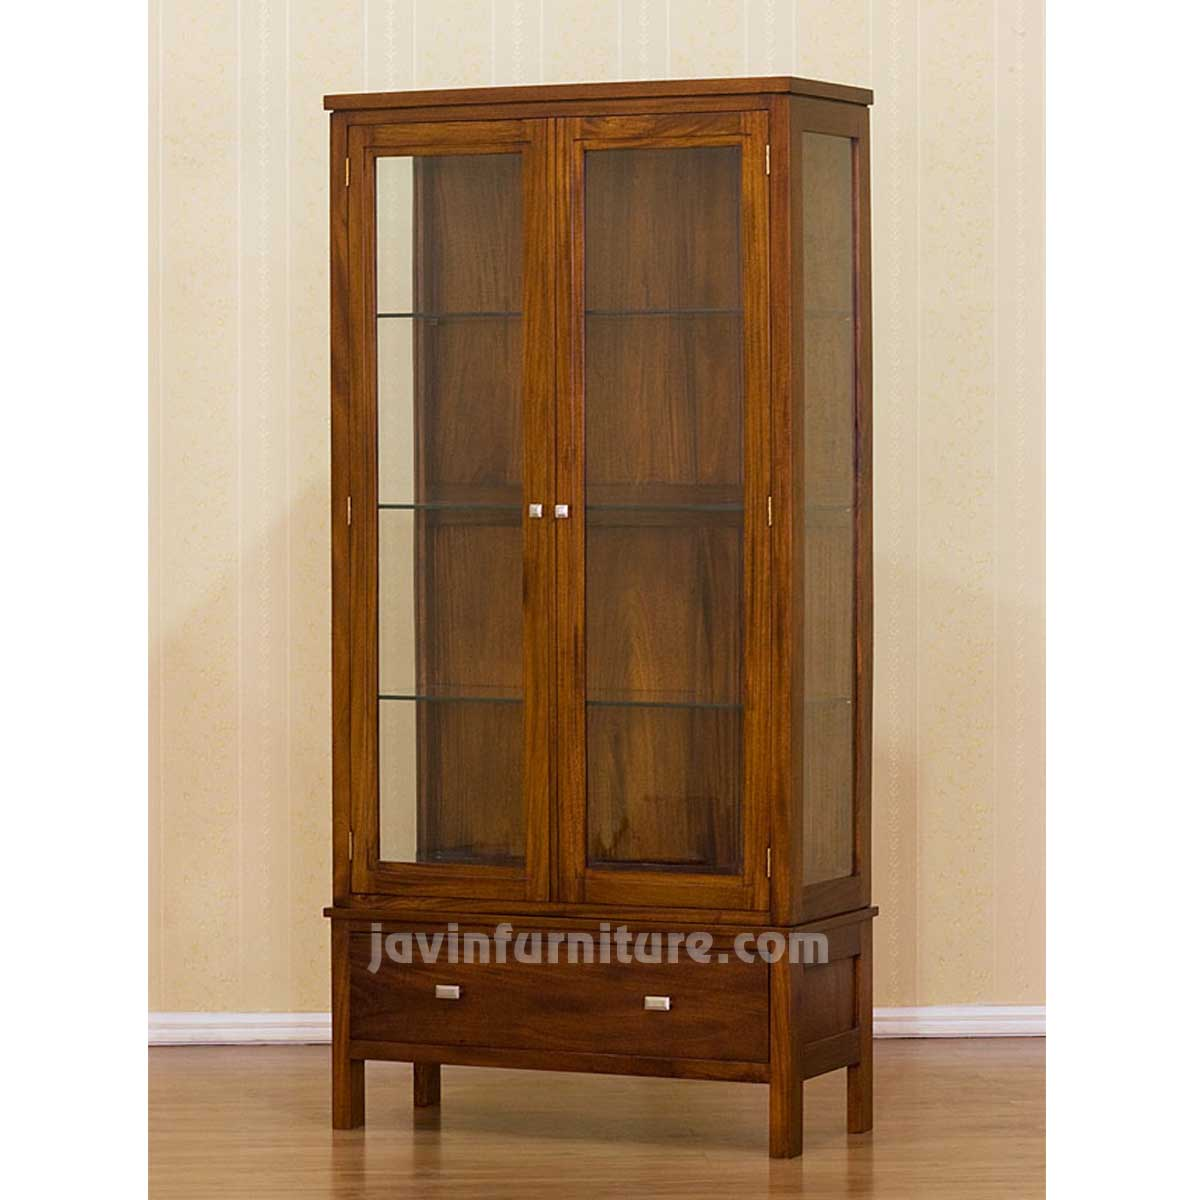 Wood Storage Cabinets With Doors ~ Storage cabinet with glass doors homesfeed